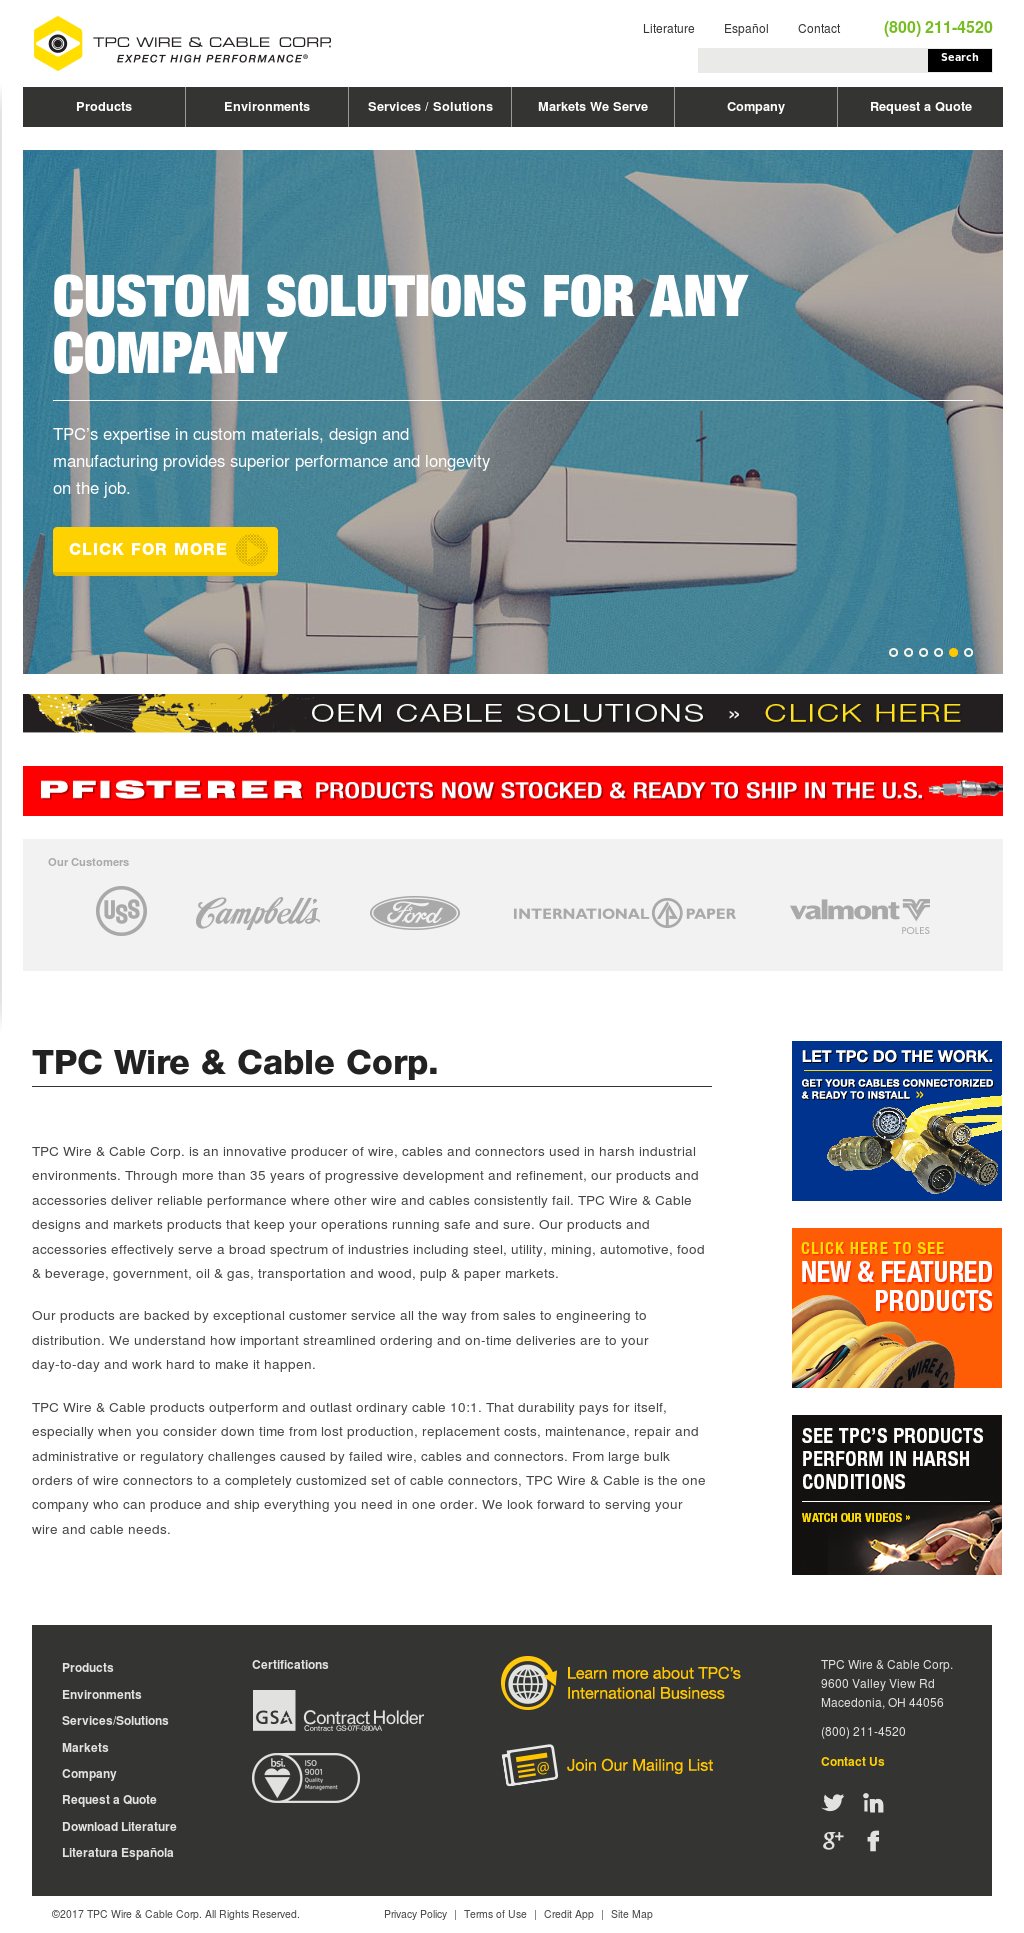 TPC Wire & Cable Competitors, Revenue and Employees - Owler Company ...